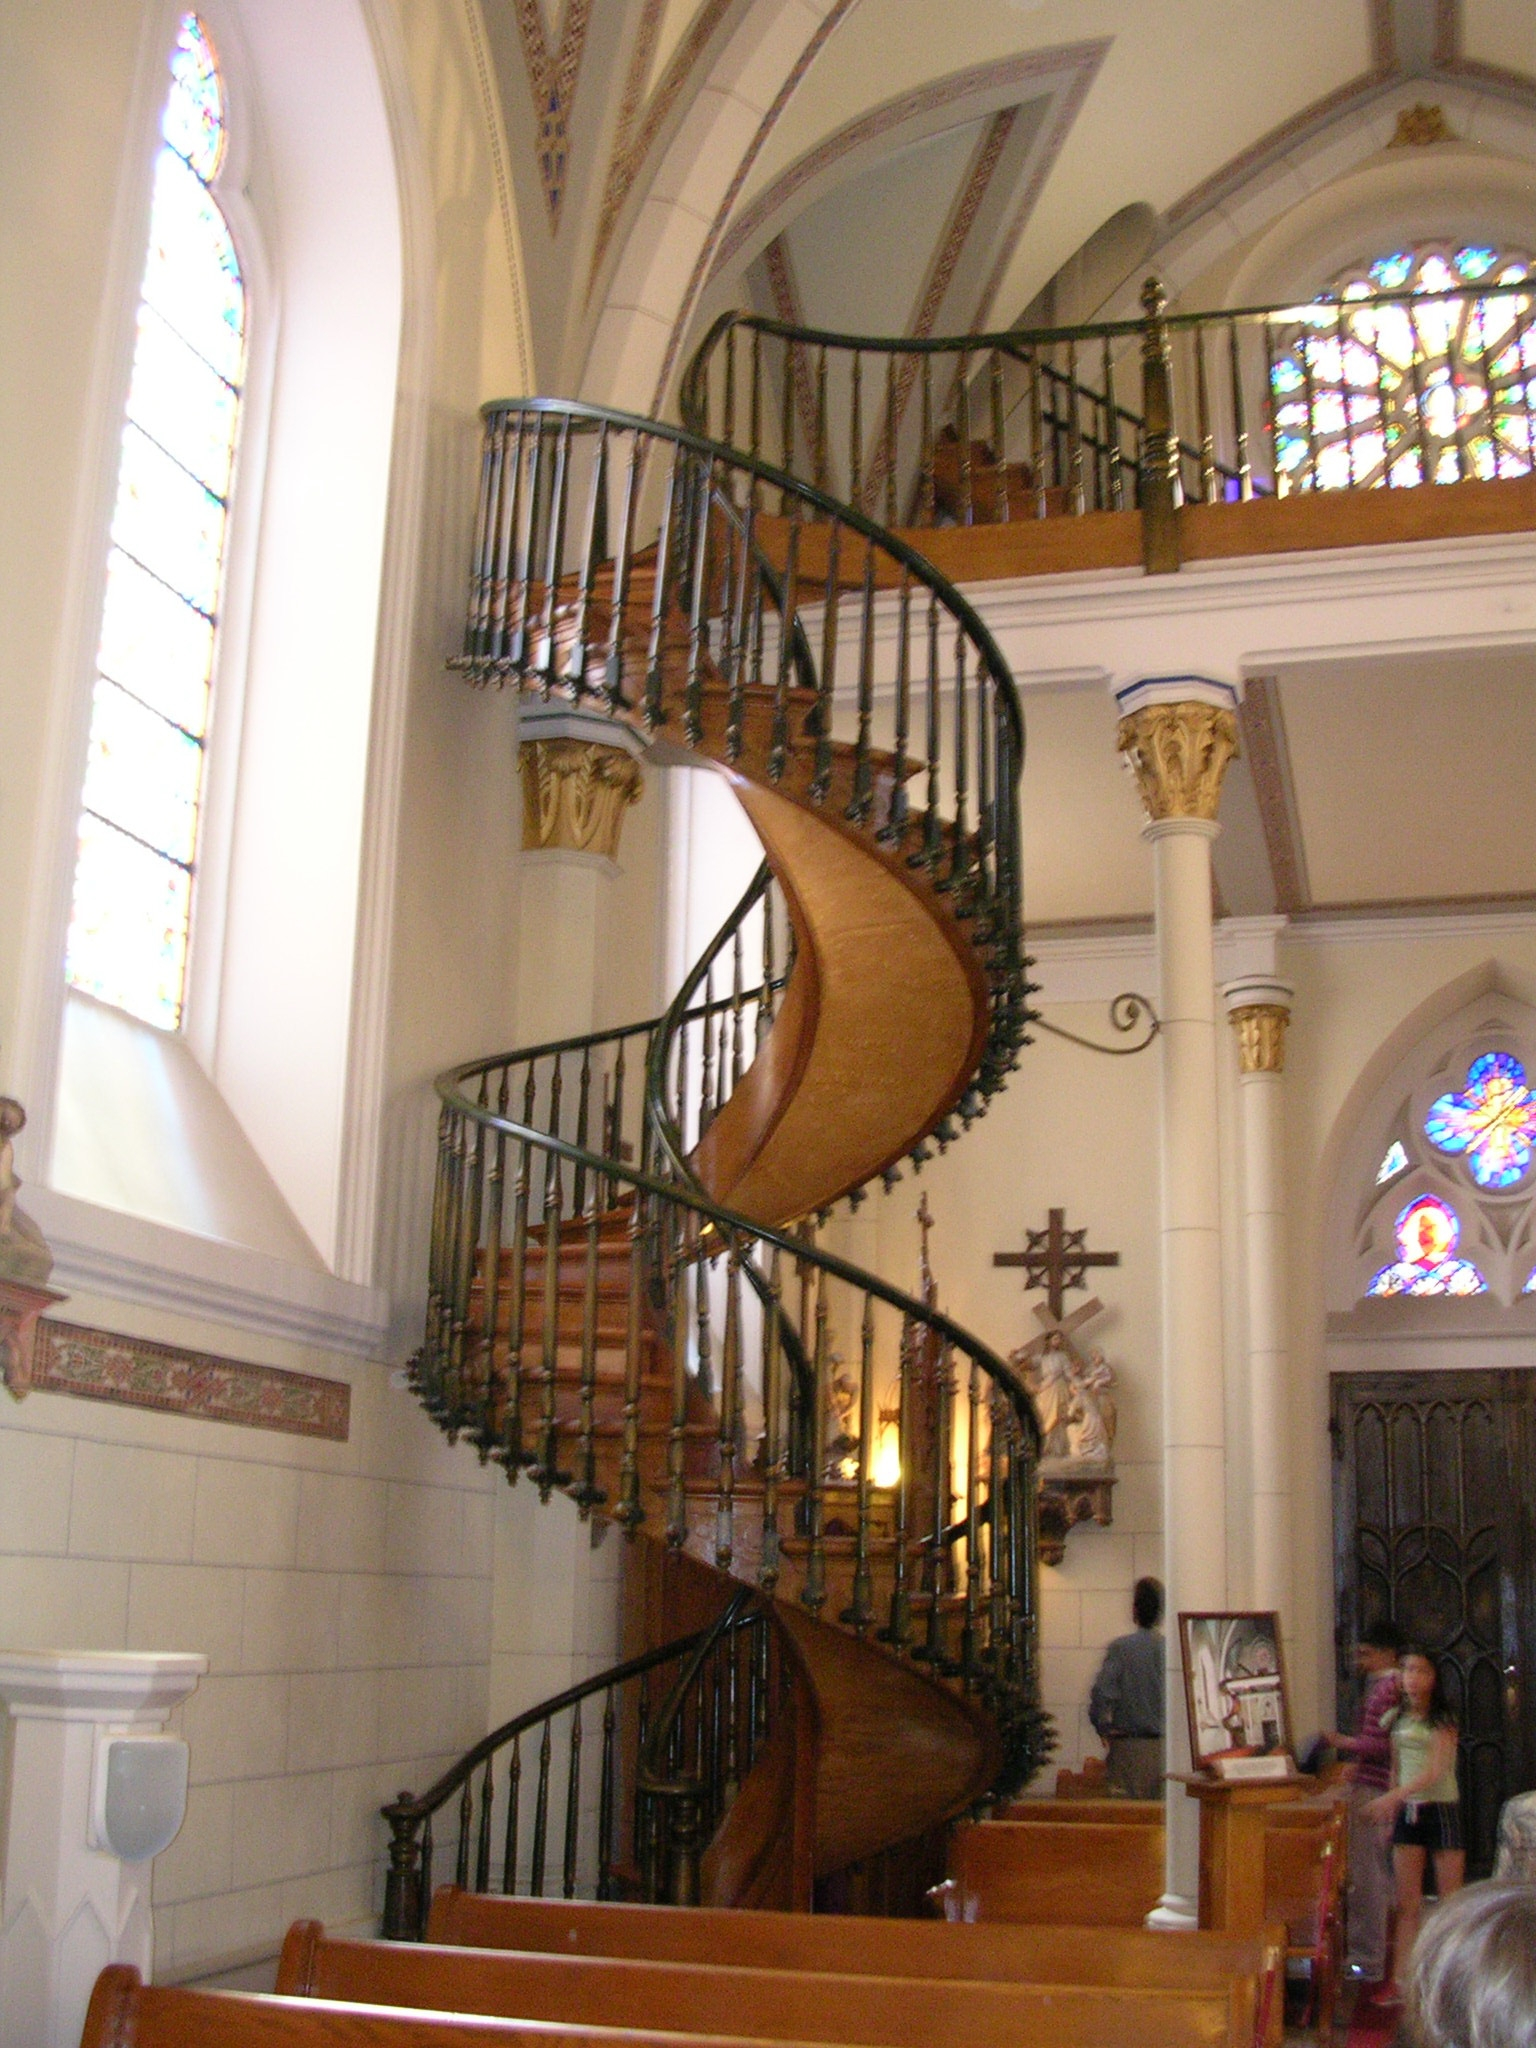 Loretto Chapel Staircase Travels With Gary | The Staircase Of Loretto Chapel | Original | Light | Weird | Stairway | Magical